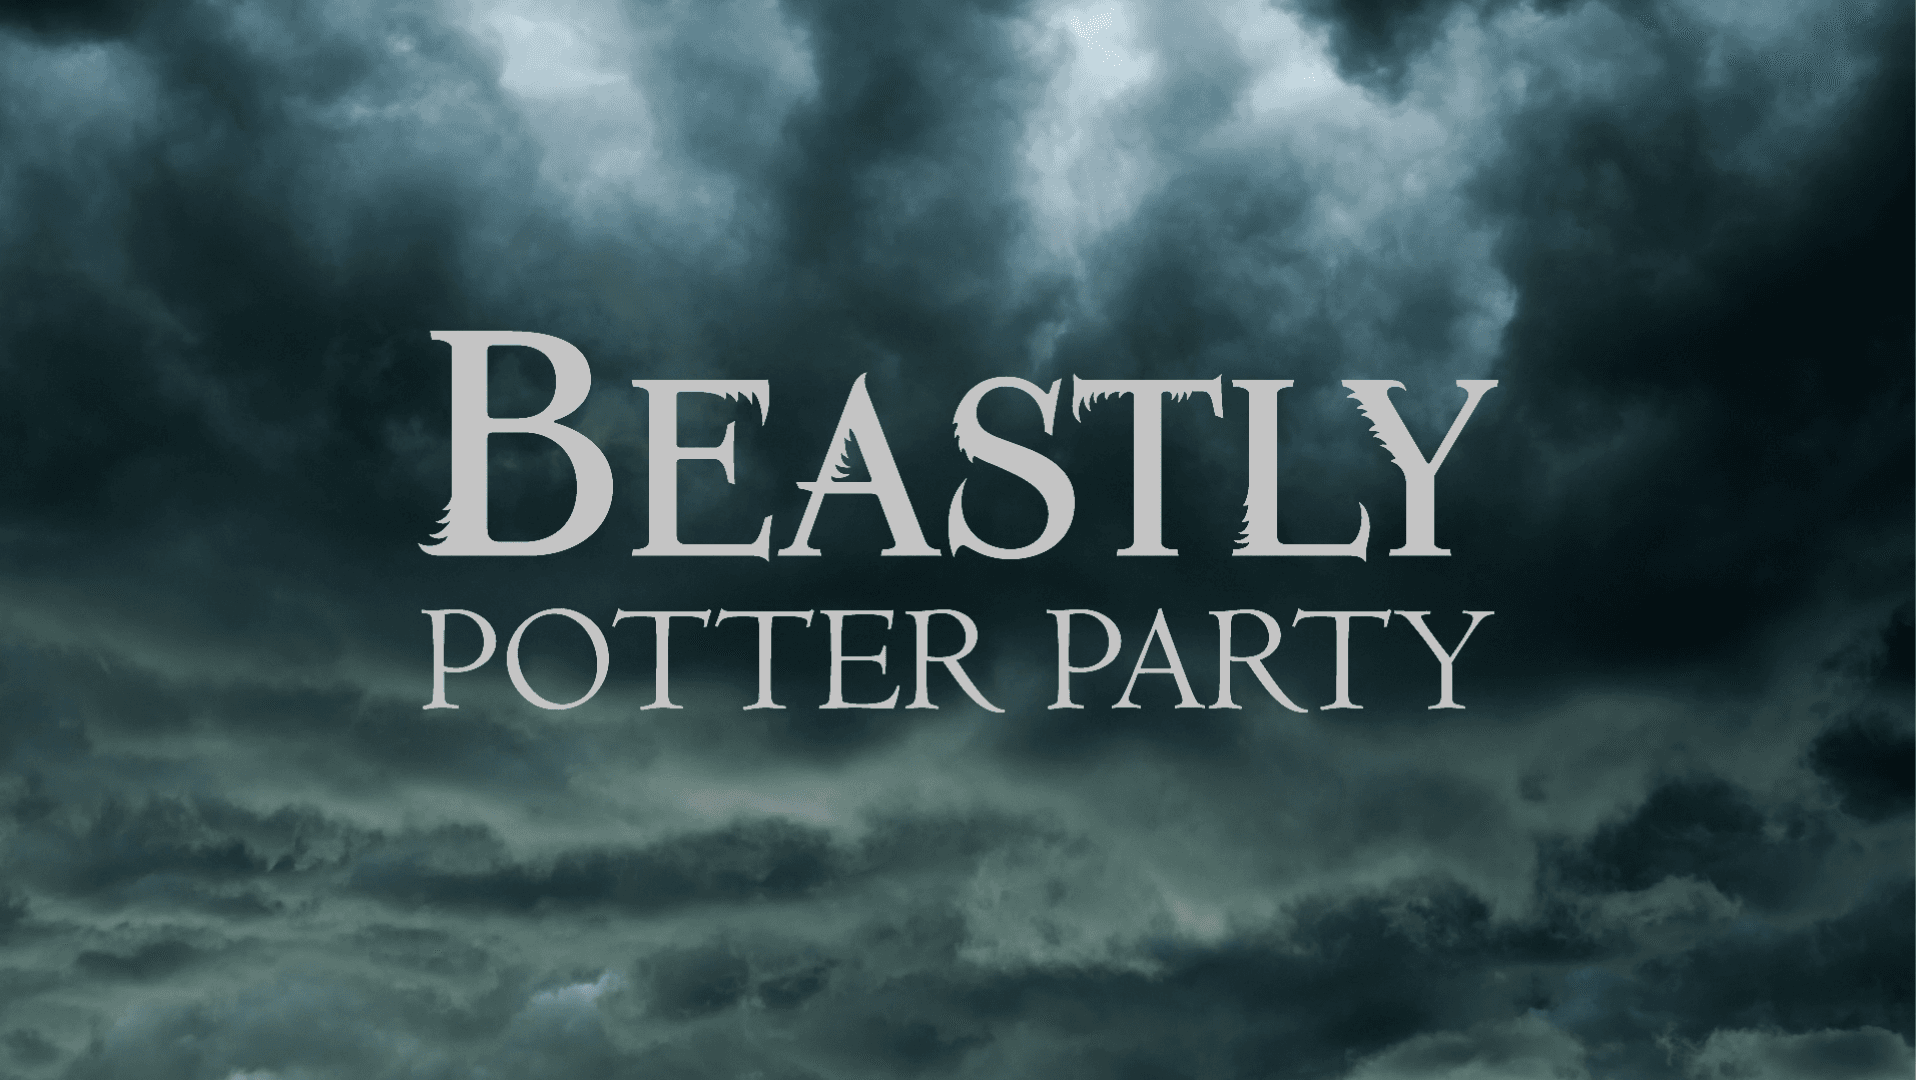 Beastly Potter Party